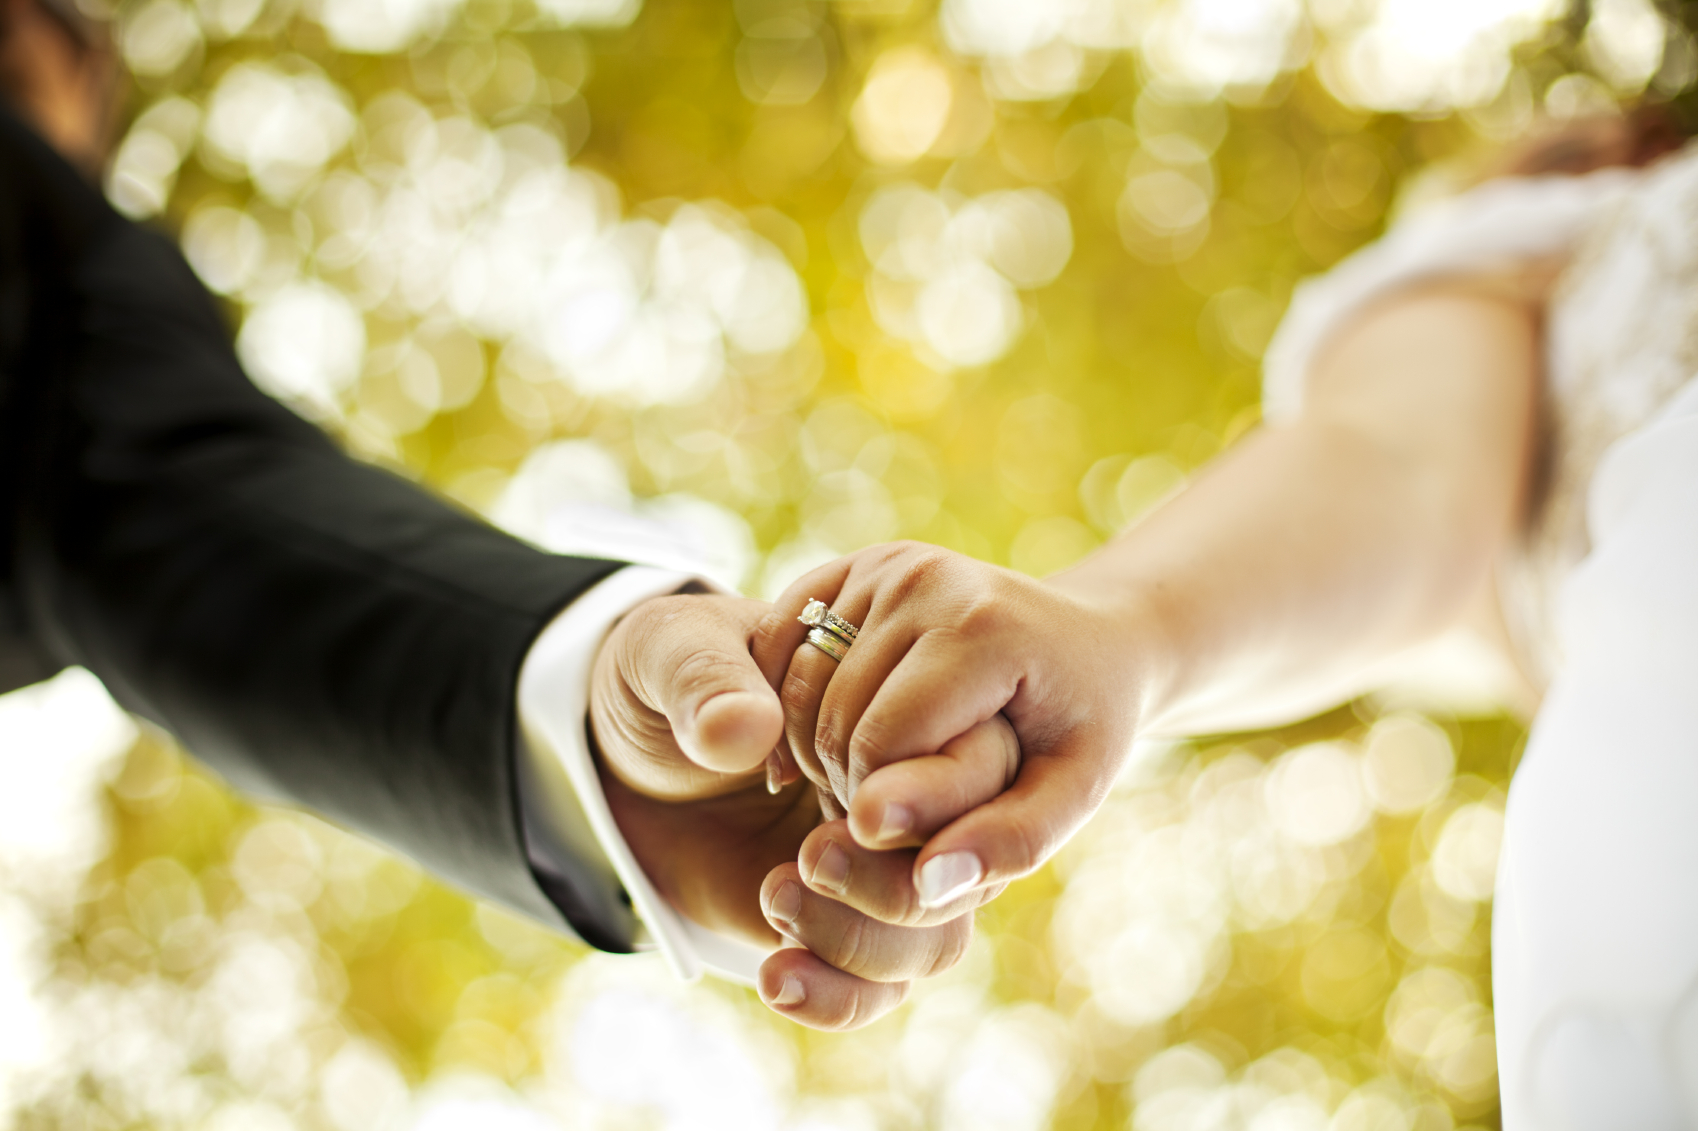 Marriage: Legates must fight the good fight